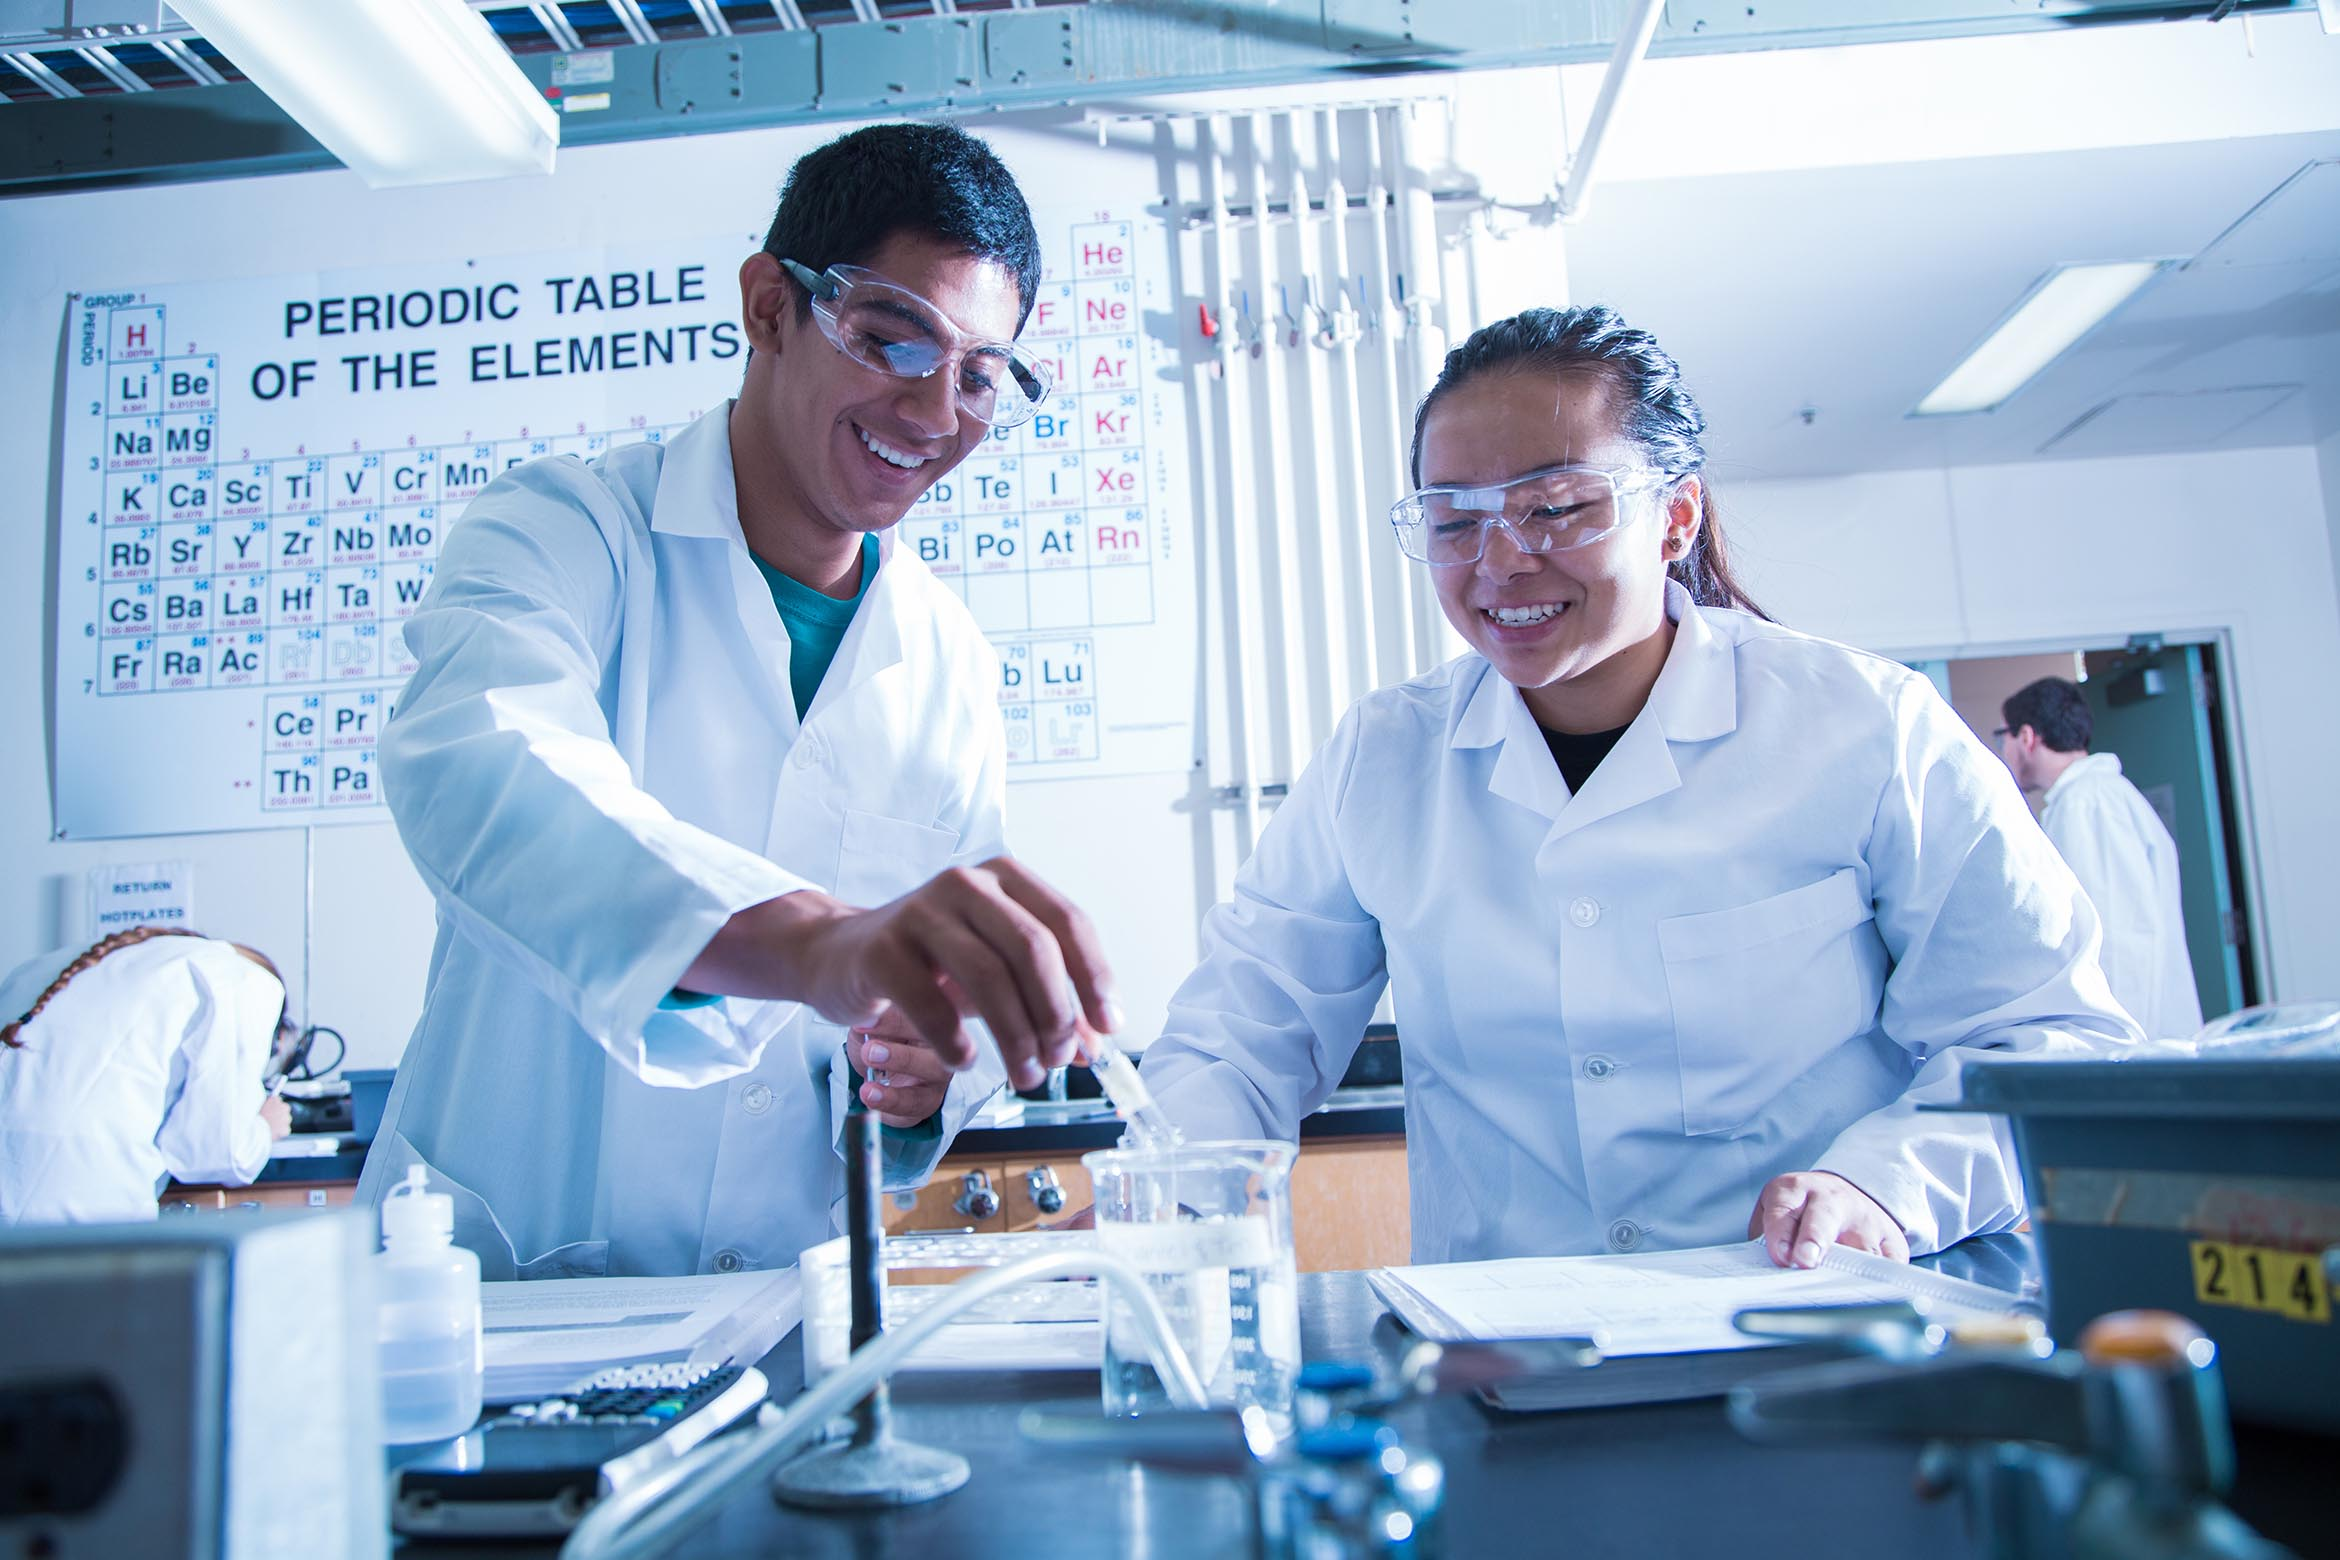 This is an image of two students doing chemistry research in a lab.